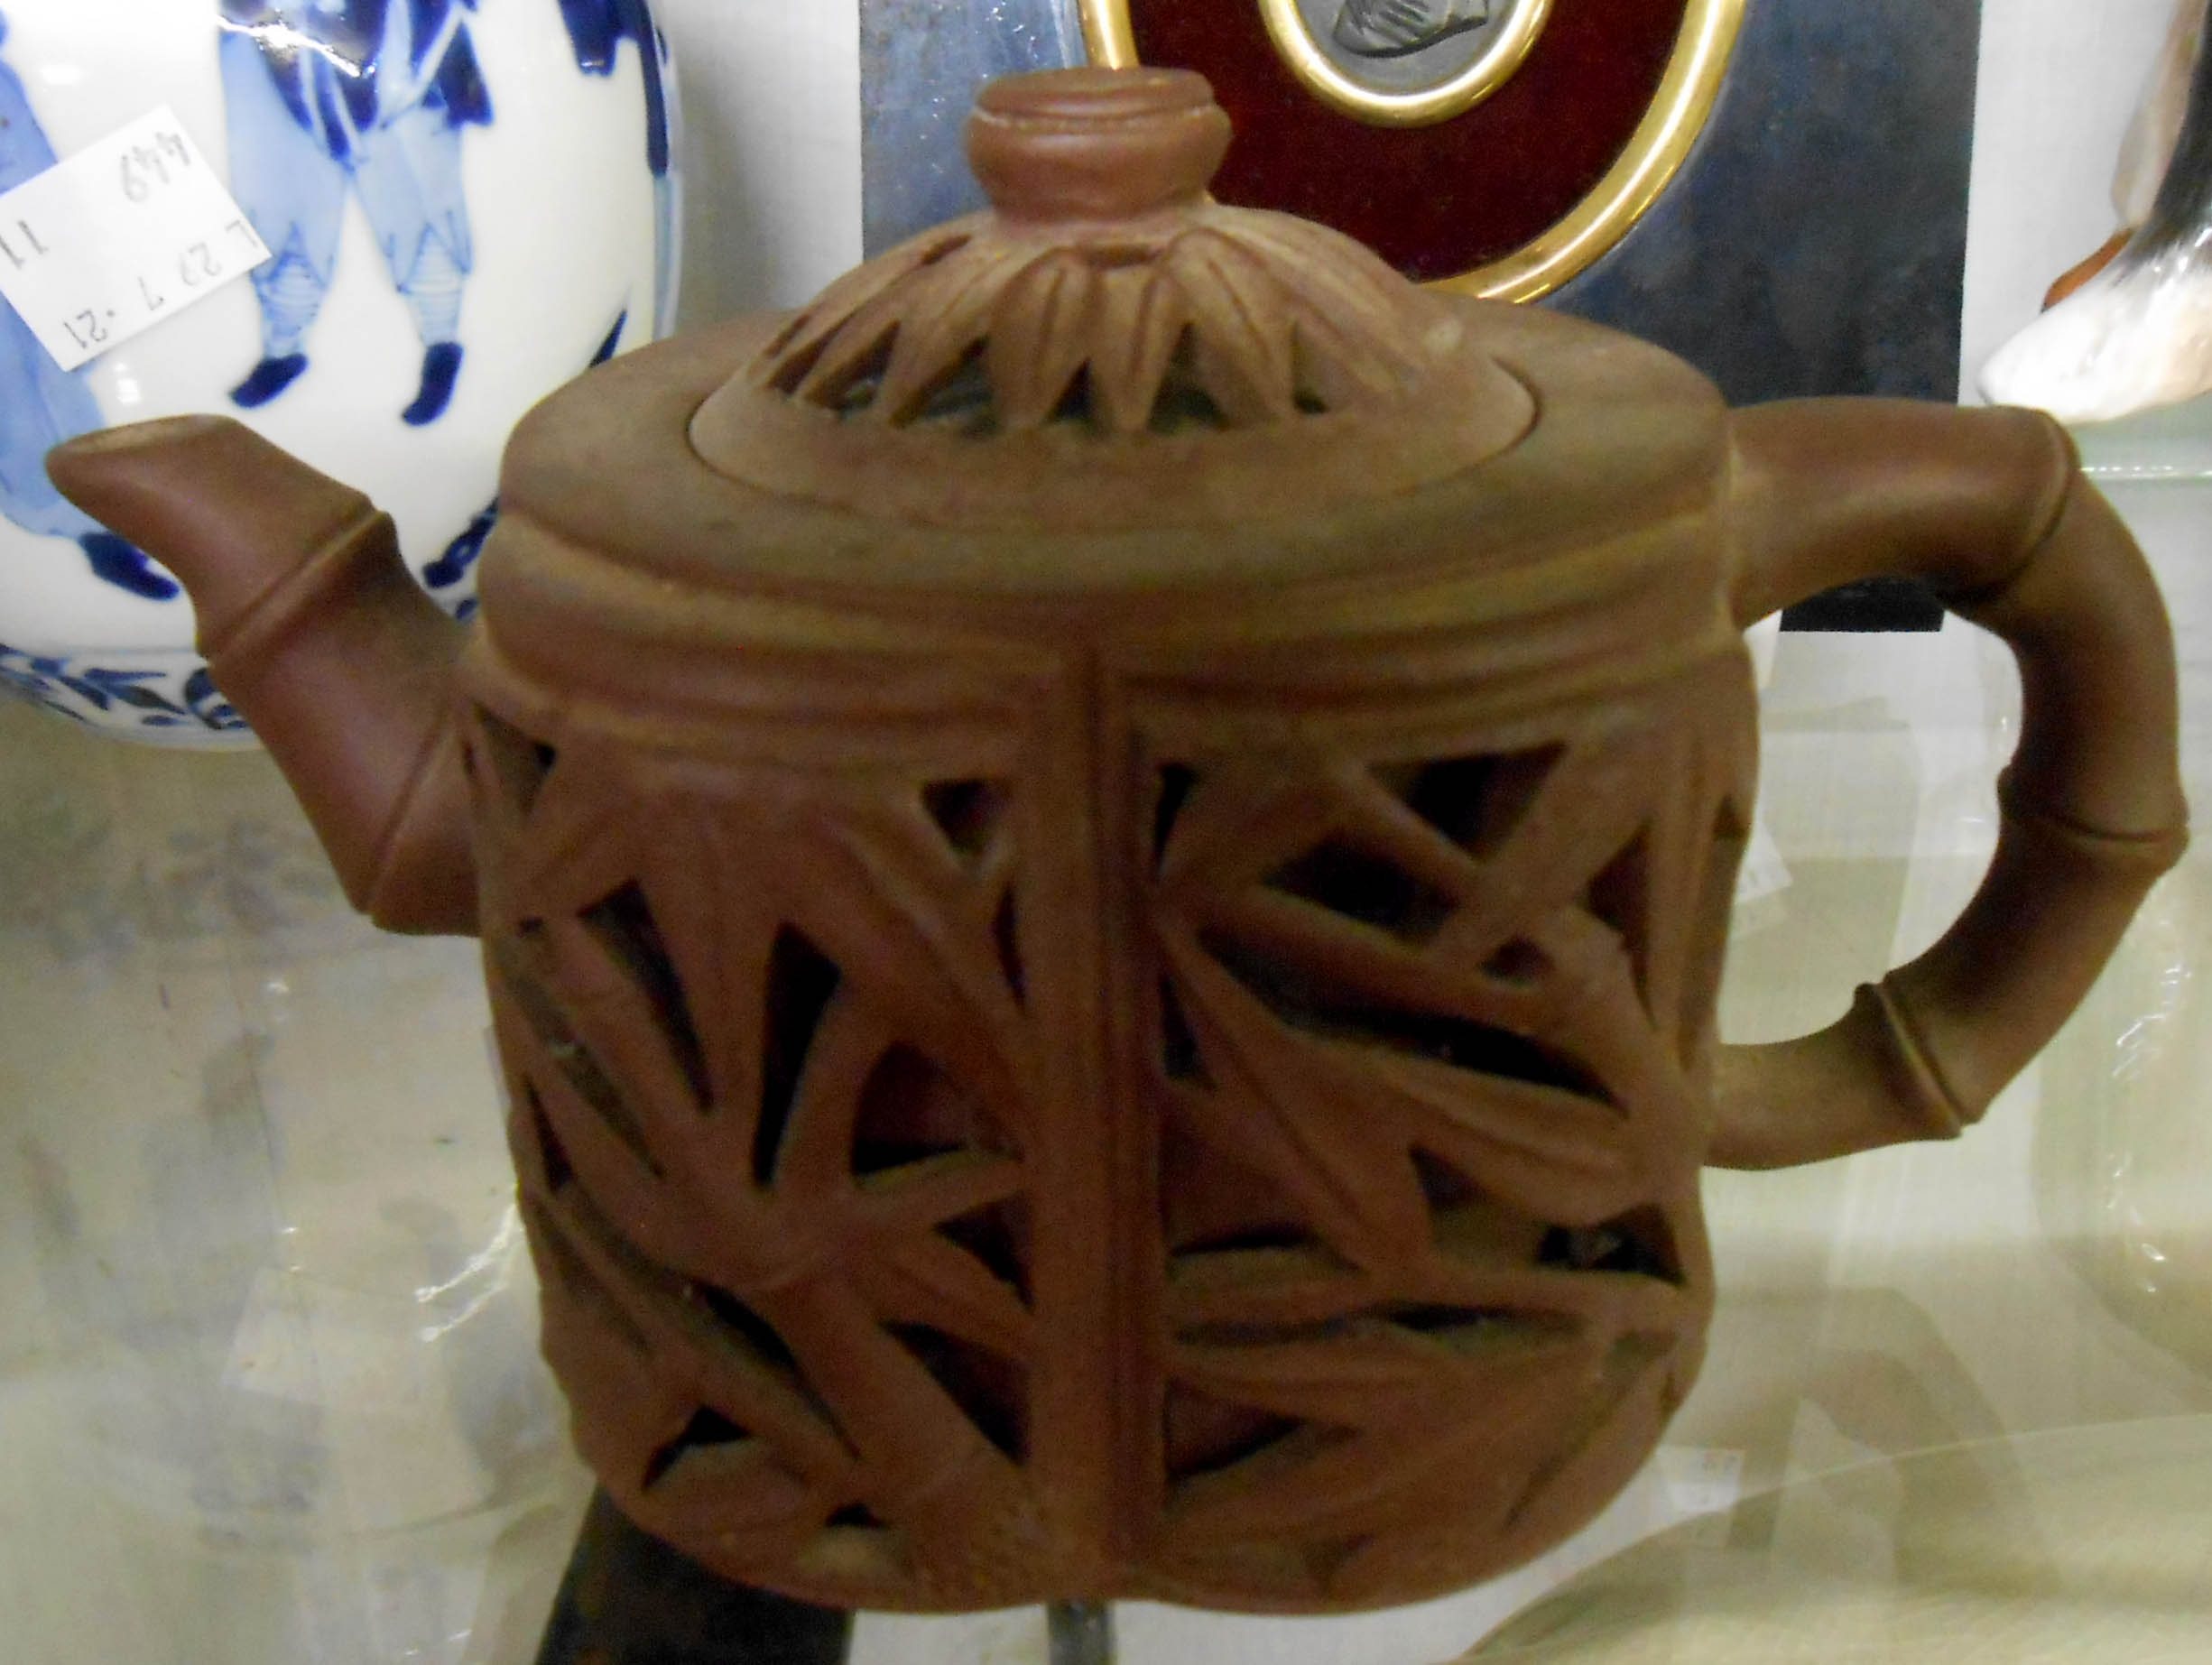 A Chinese Yixing zisha clay teapot decorated with reticulated bamboo form panels - bearing seal